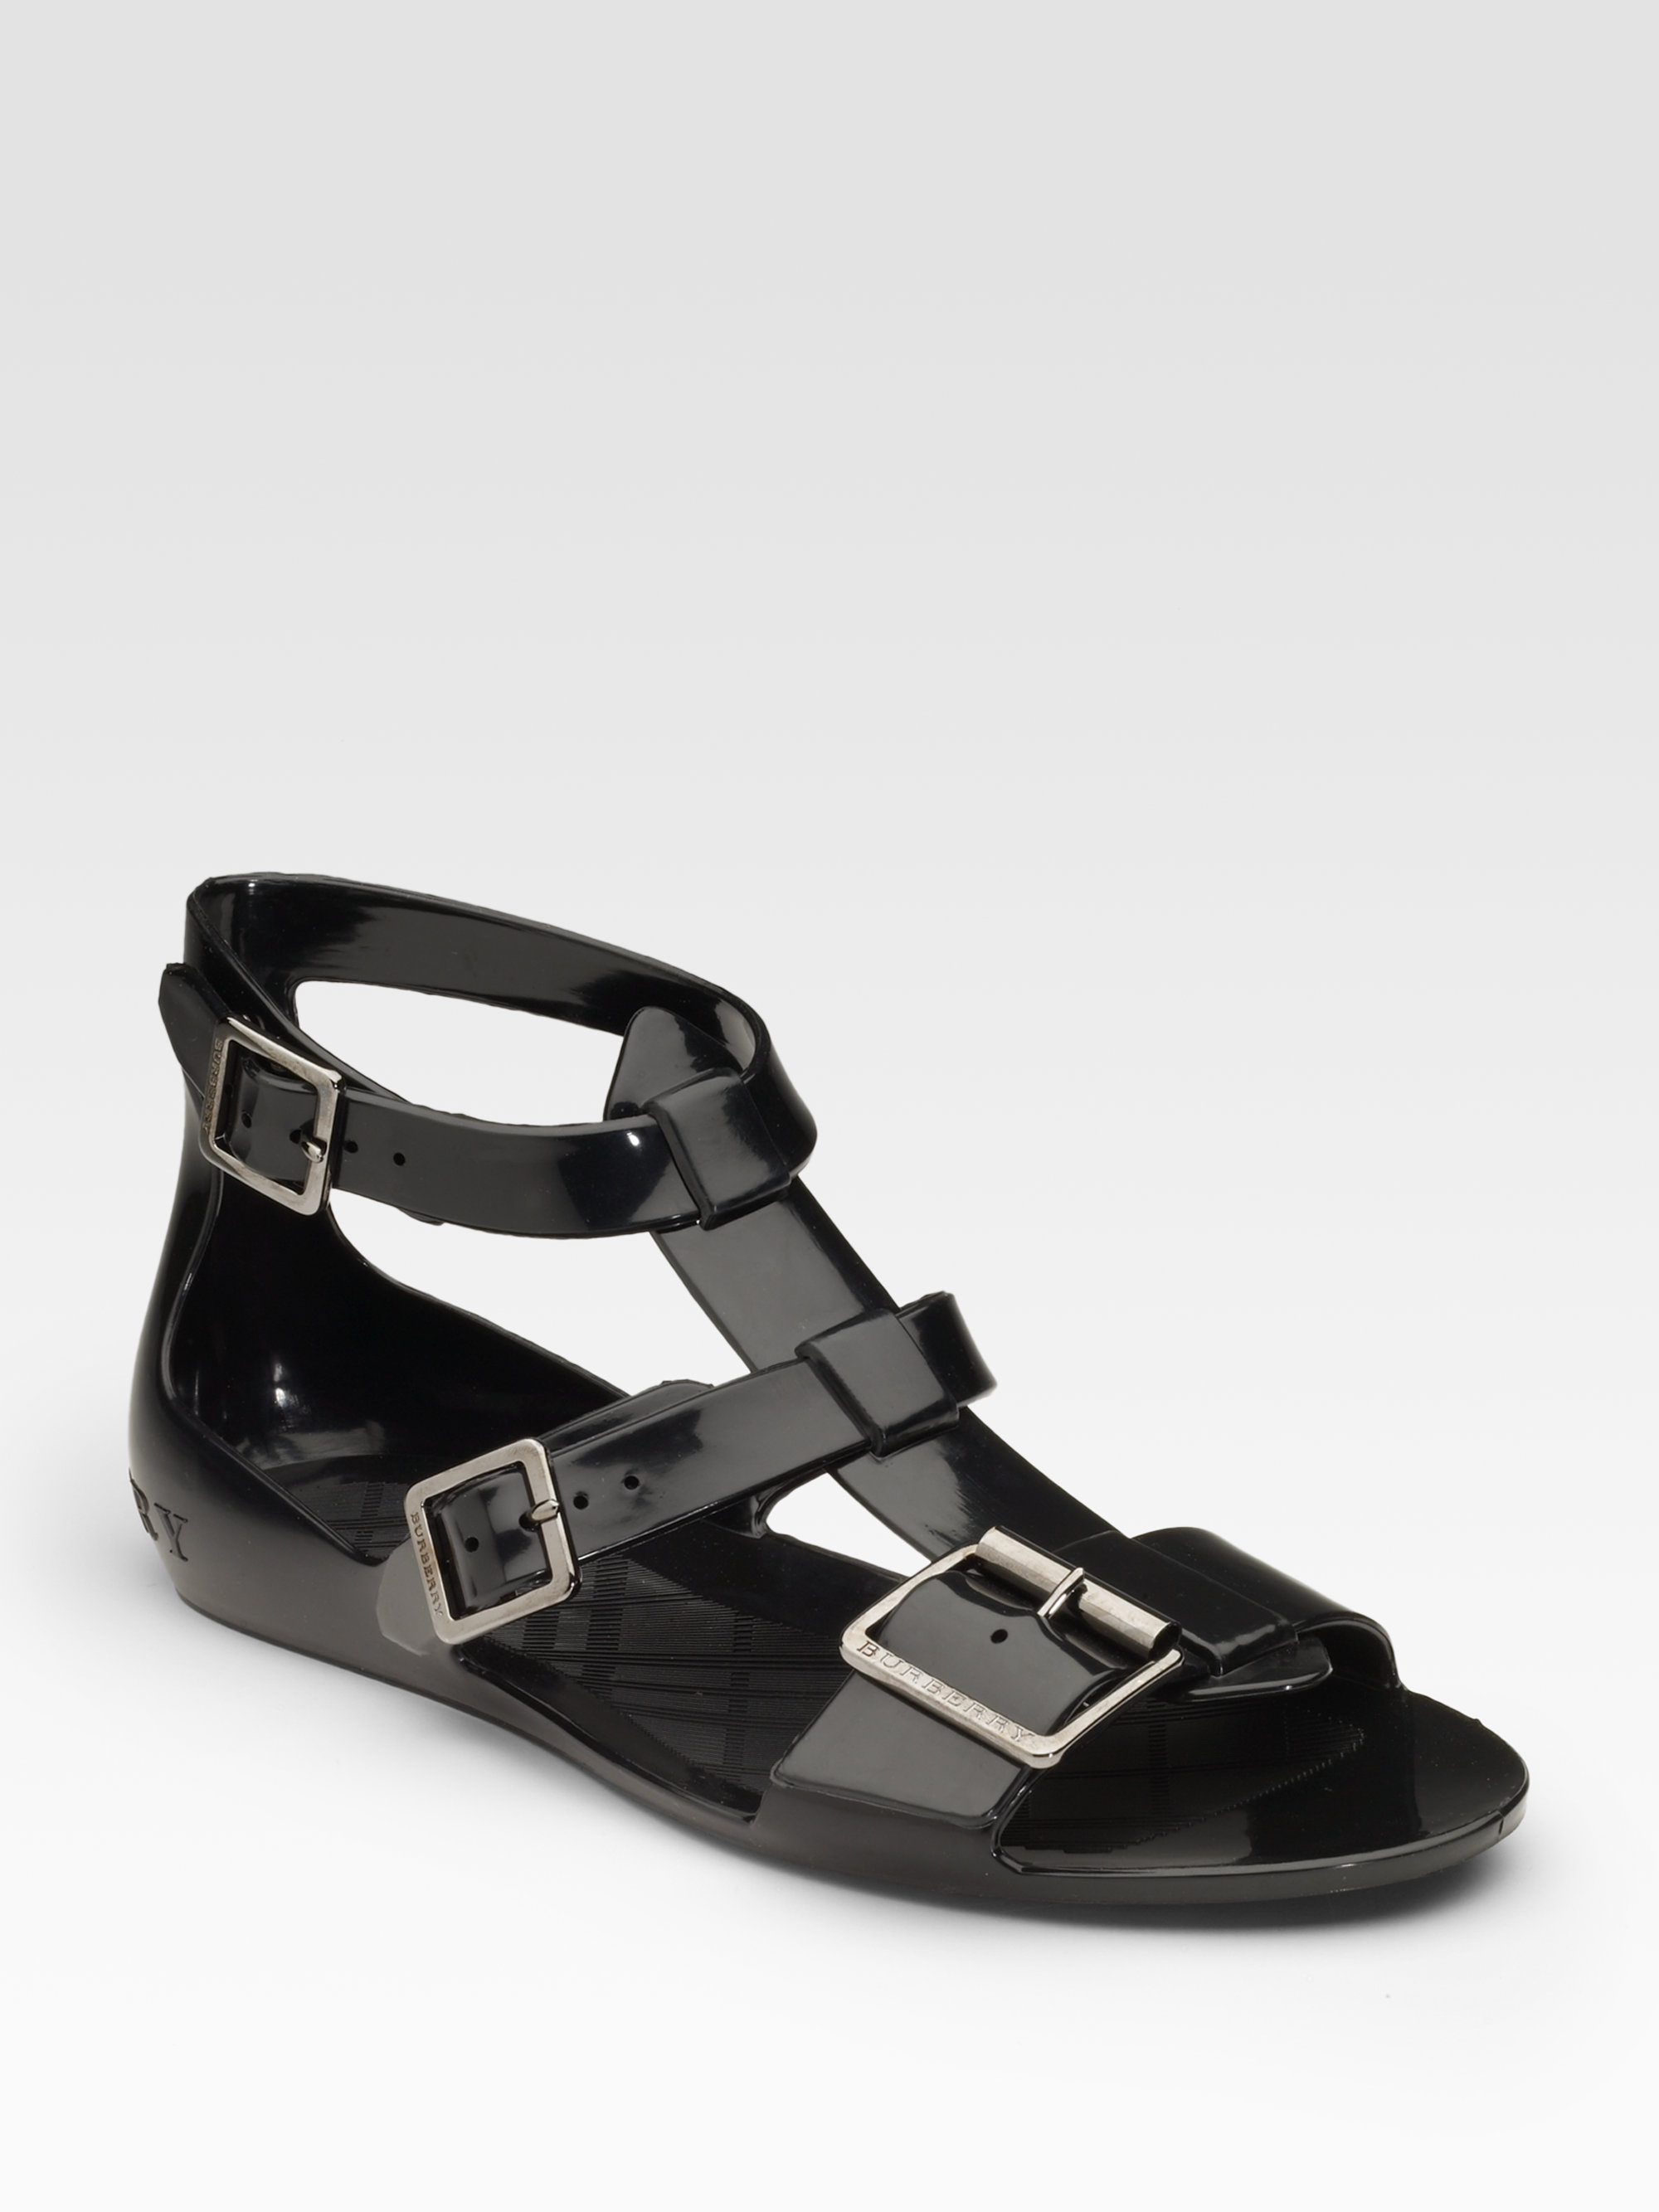 discount online outlet newest Burberry Black Sport Thong Sandals browse for sale buy cheap new outlet cheap price NRDV21D